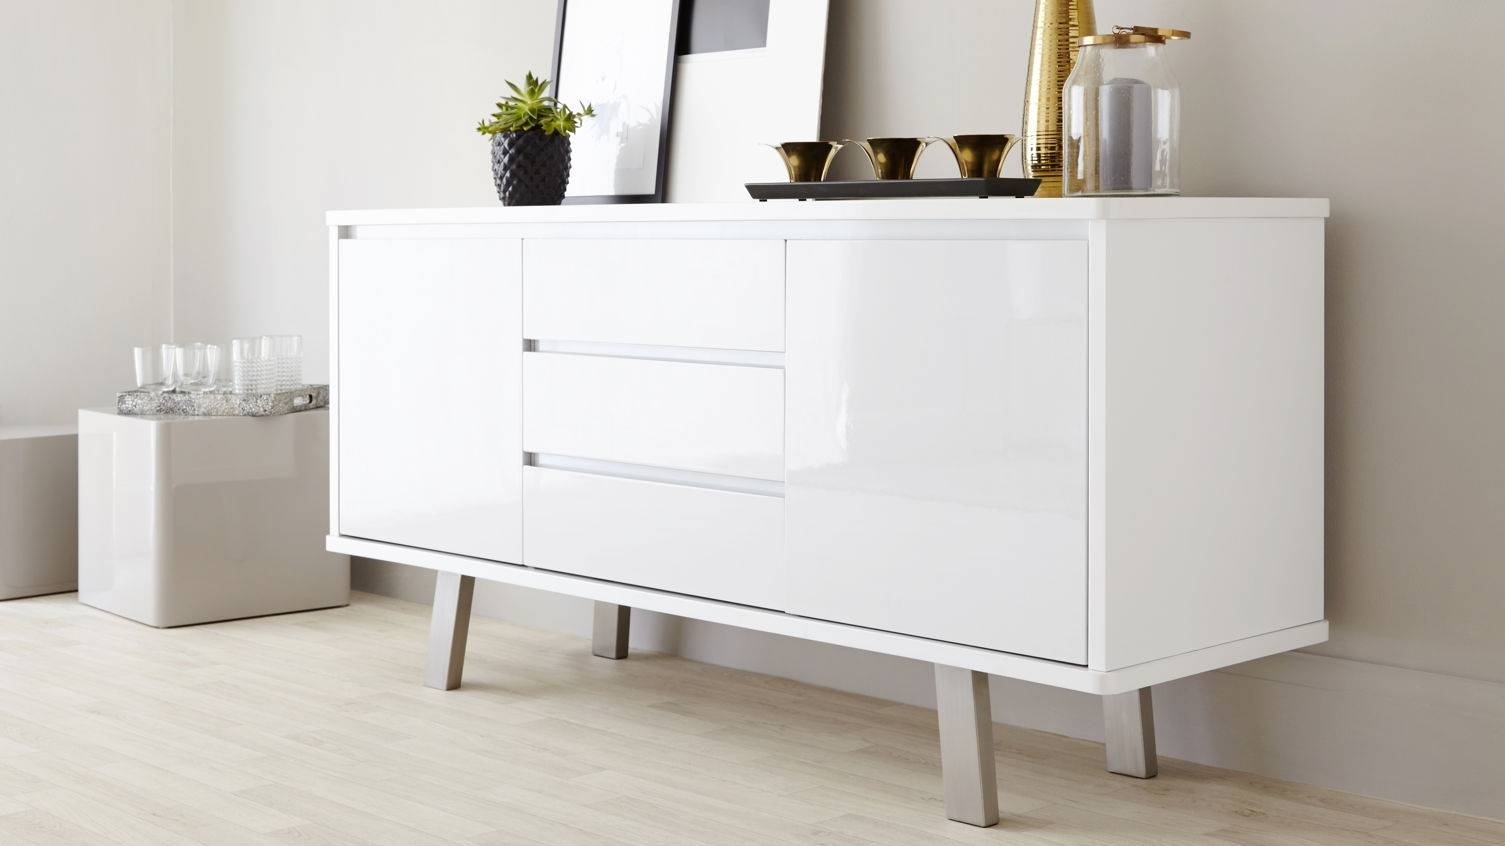 White Gloss Sideboards For Dining Room - Decor throughout White Gloss Sideboards (Image 29 of 30)